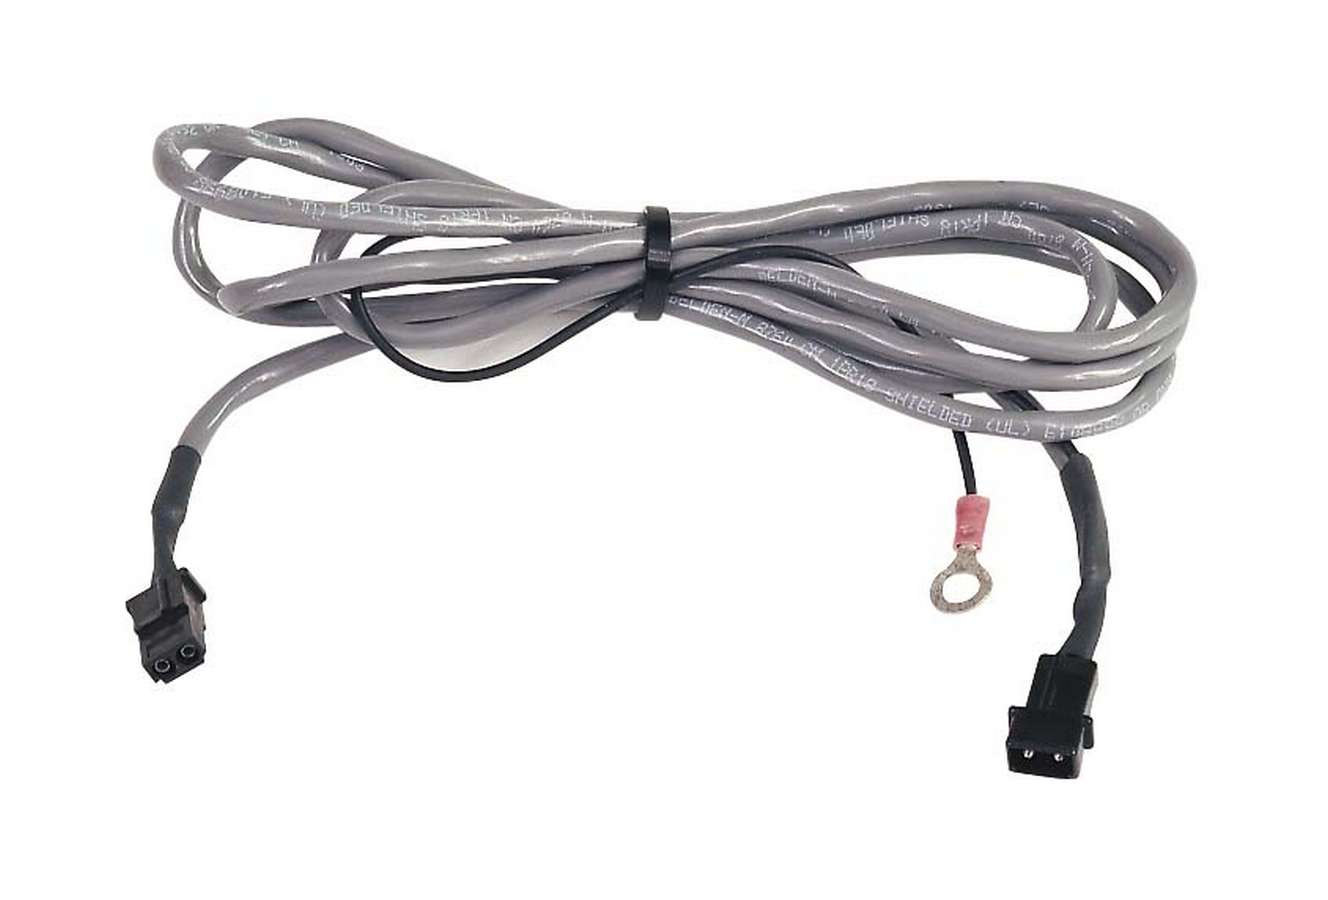 hight resolution of msd ignition shielded magnetic ignition wiring harness